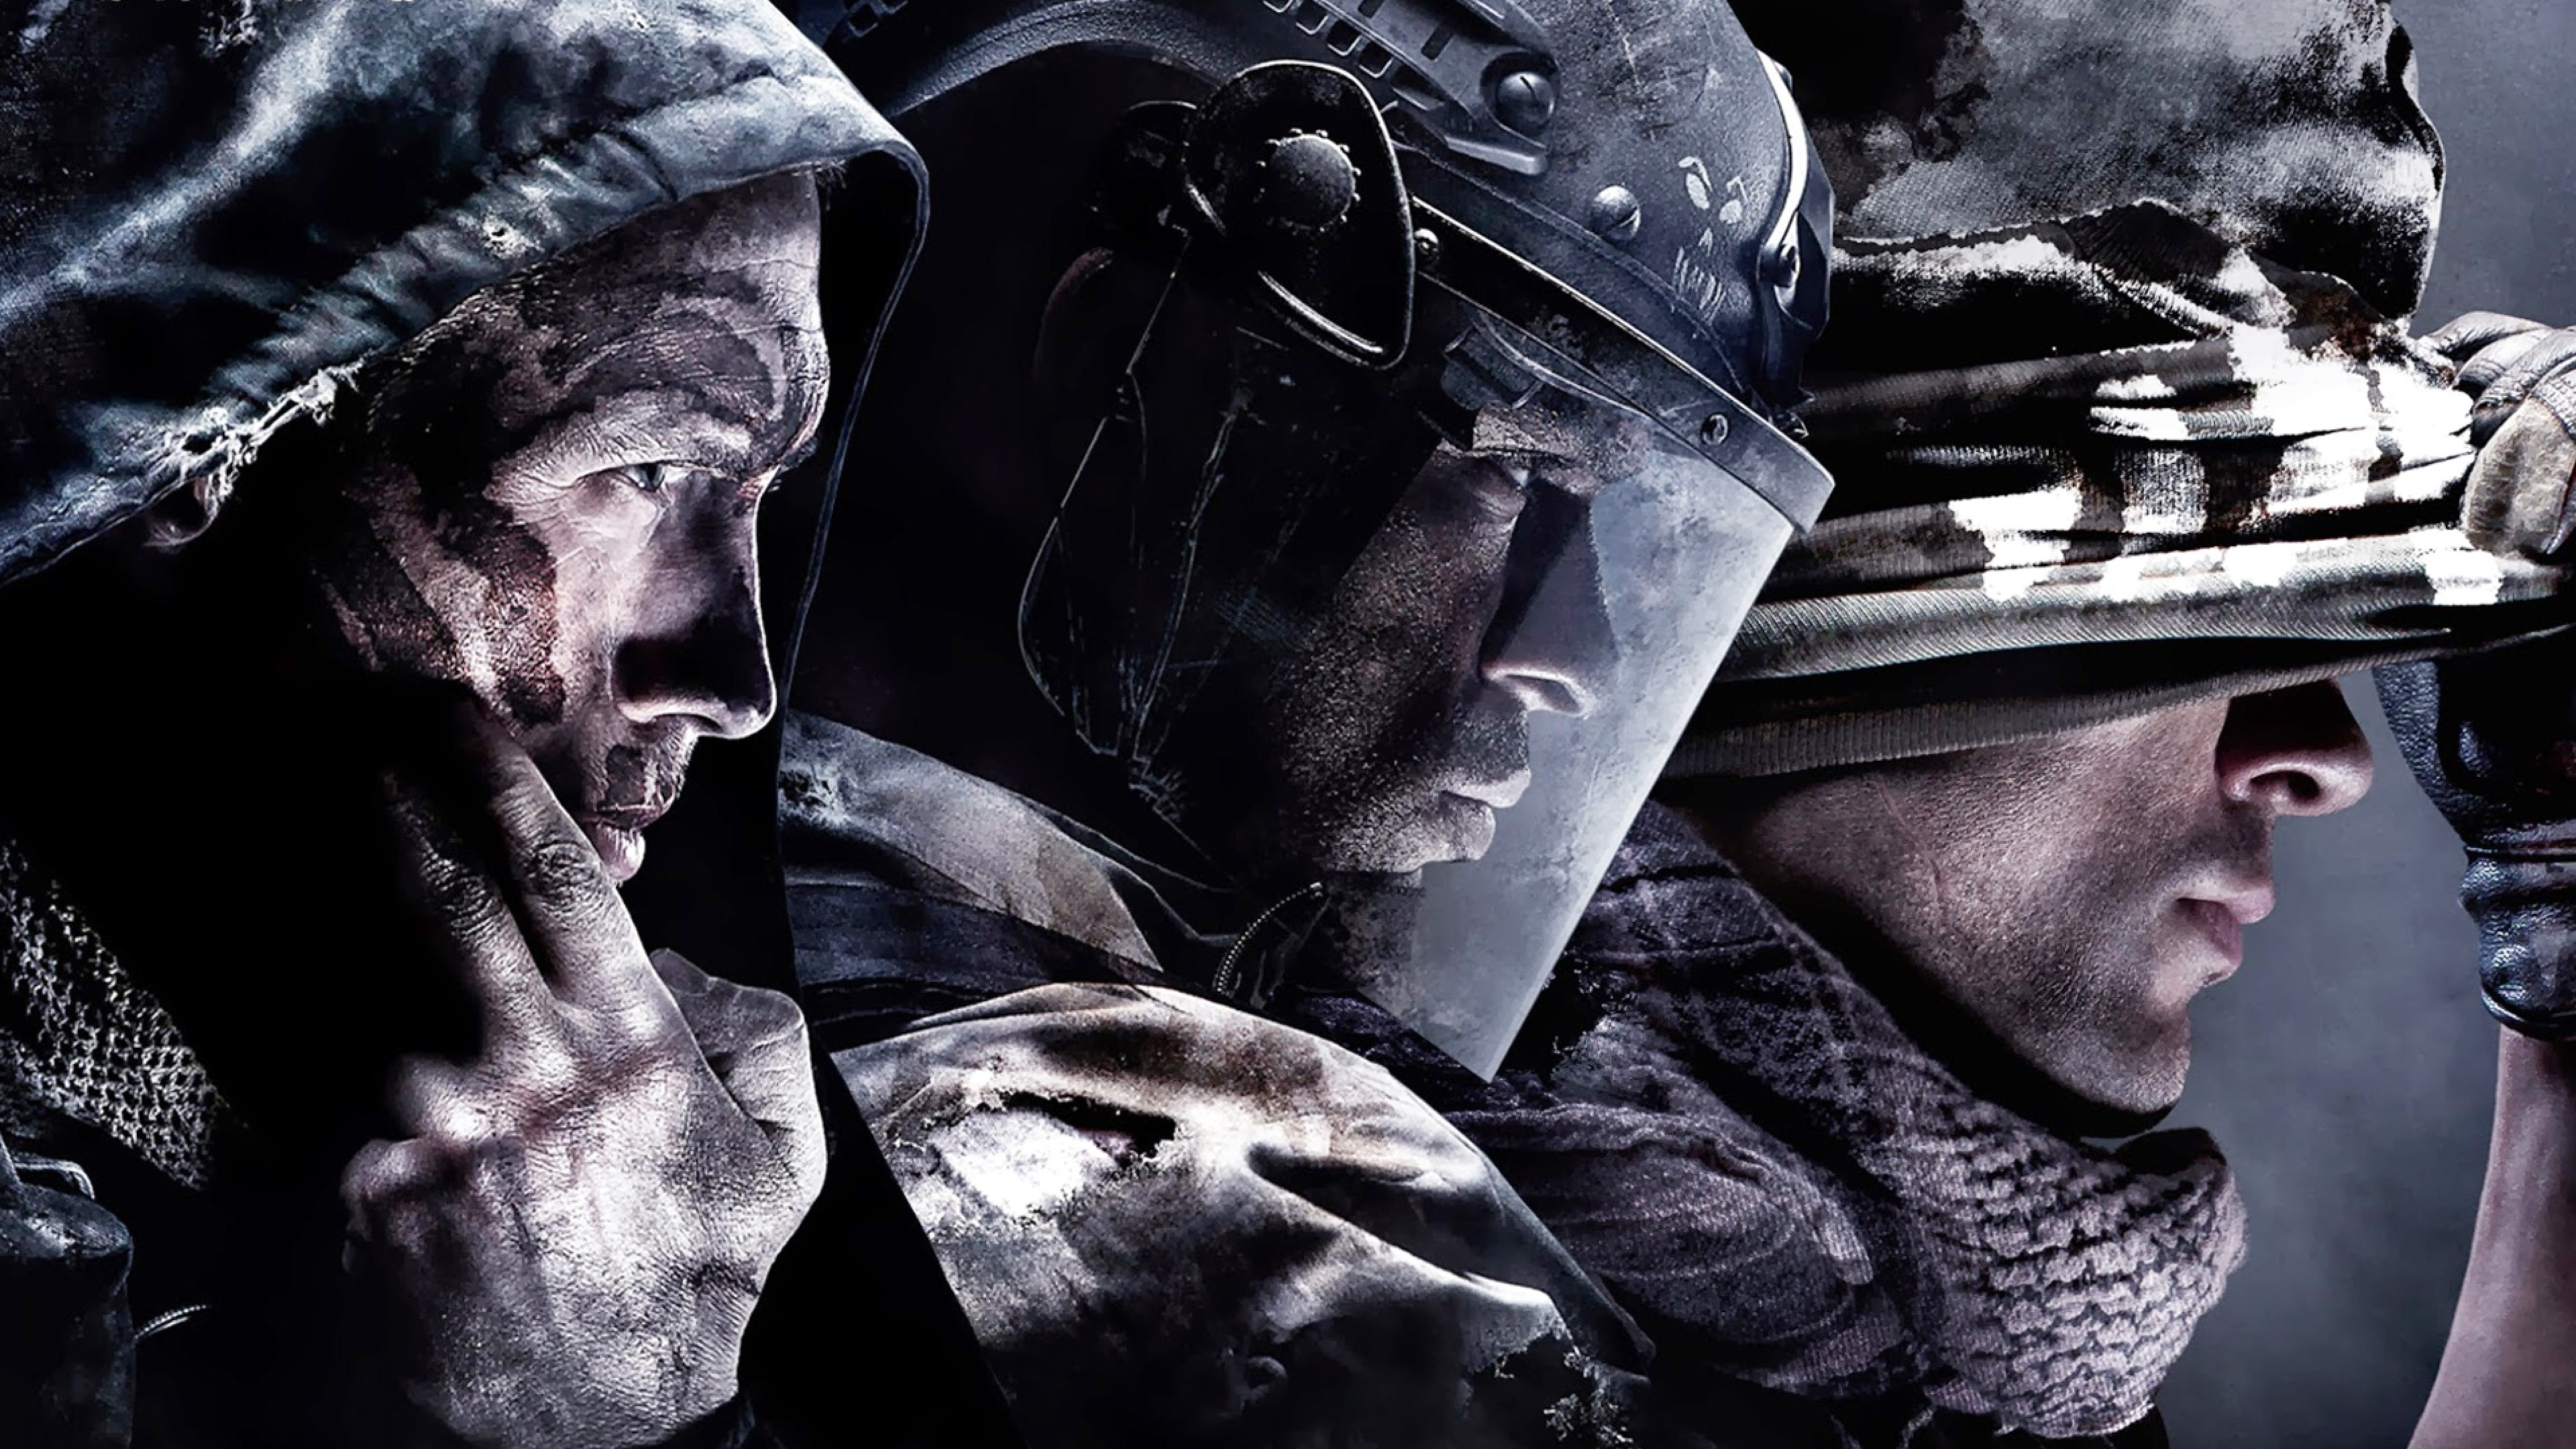 Call of Duty Ghosts Hd Wallpaper for Desktop and Mobiles ...